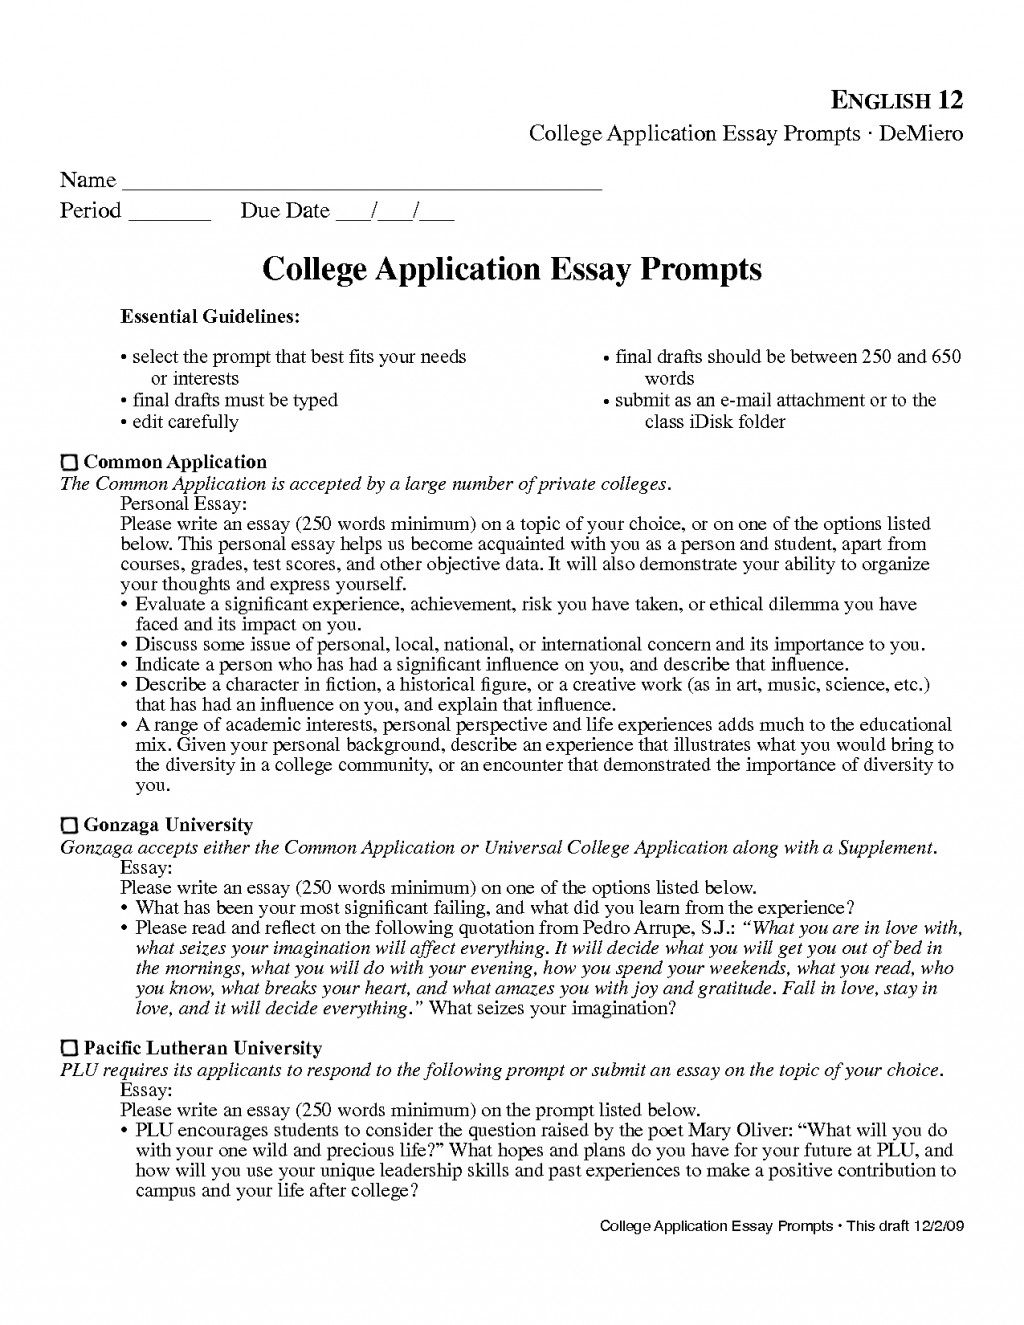 003 Essay Example Common App Prompt Prompts Provided By Application College Confidential Physic Minimalistics Co Inside Format Unusual Examples 6 1 Sample Large